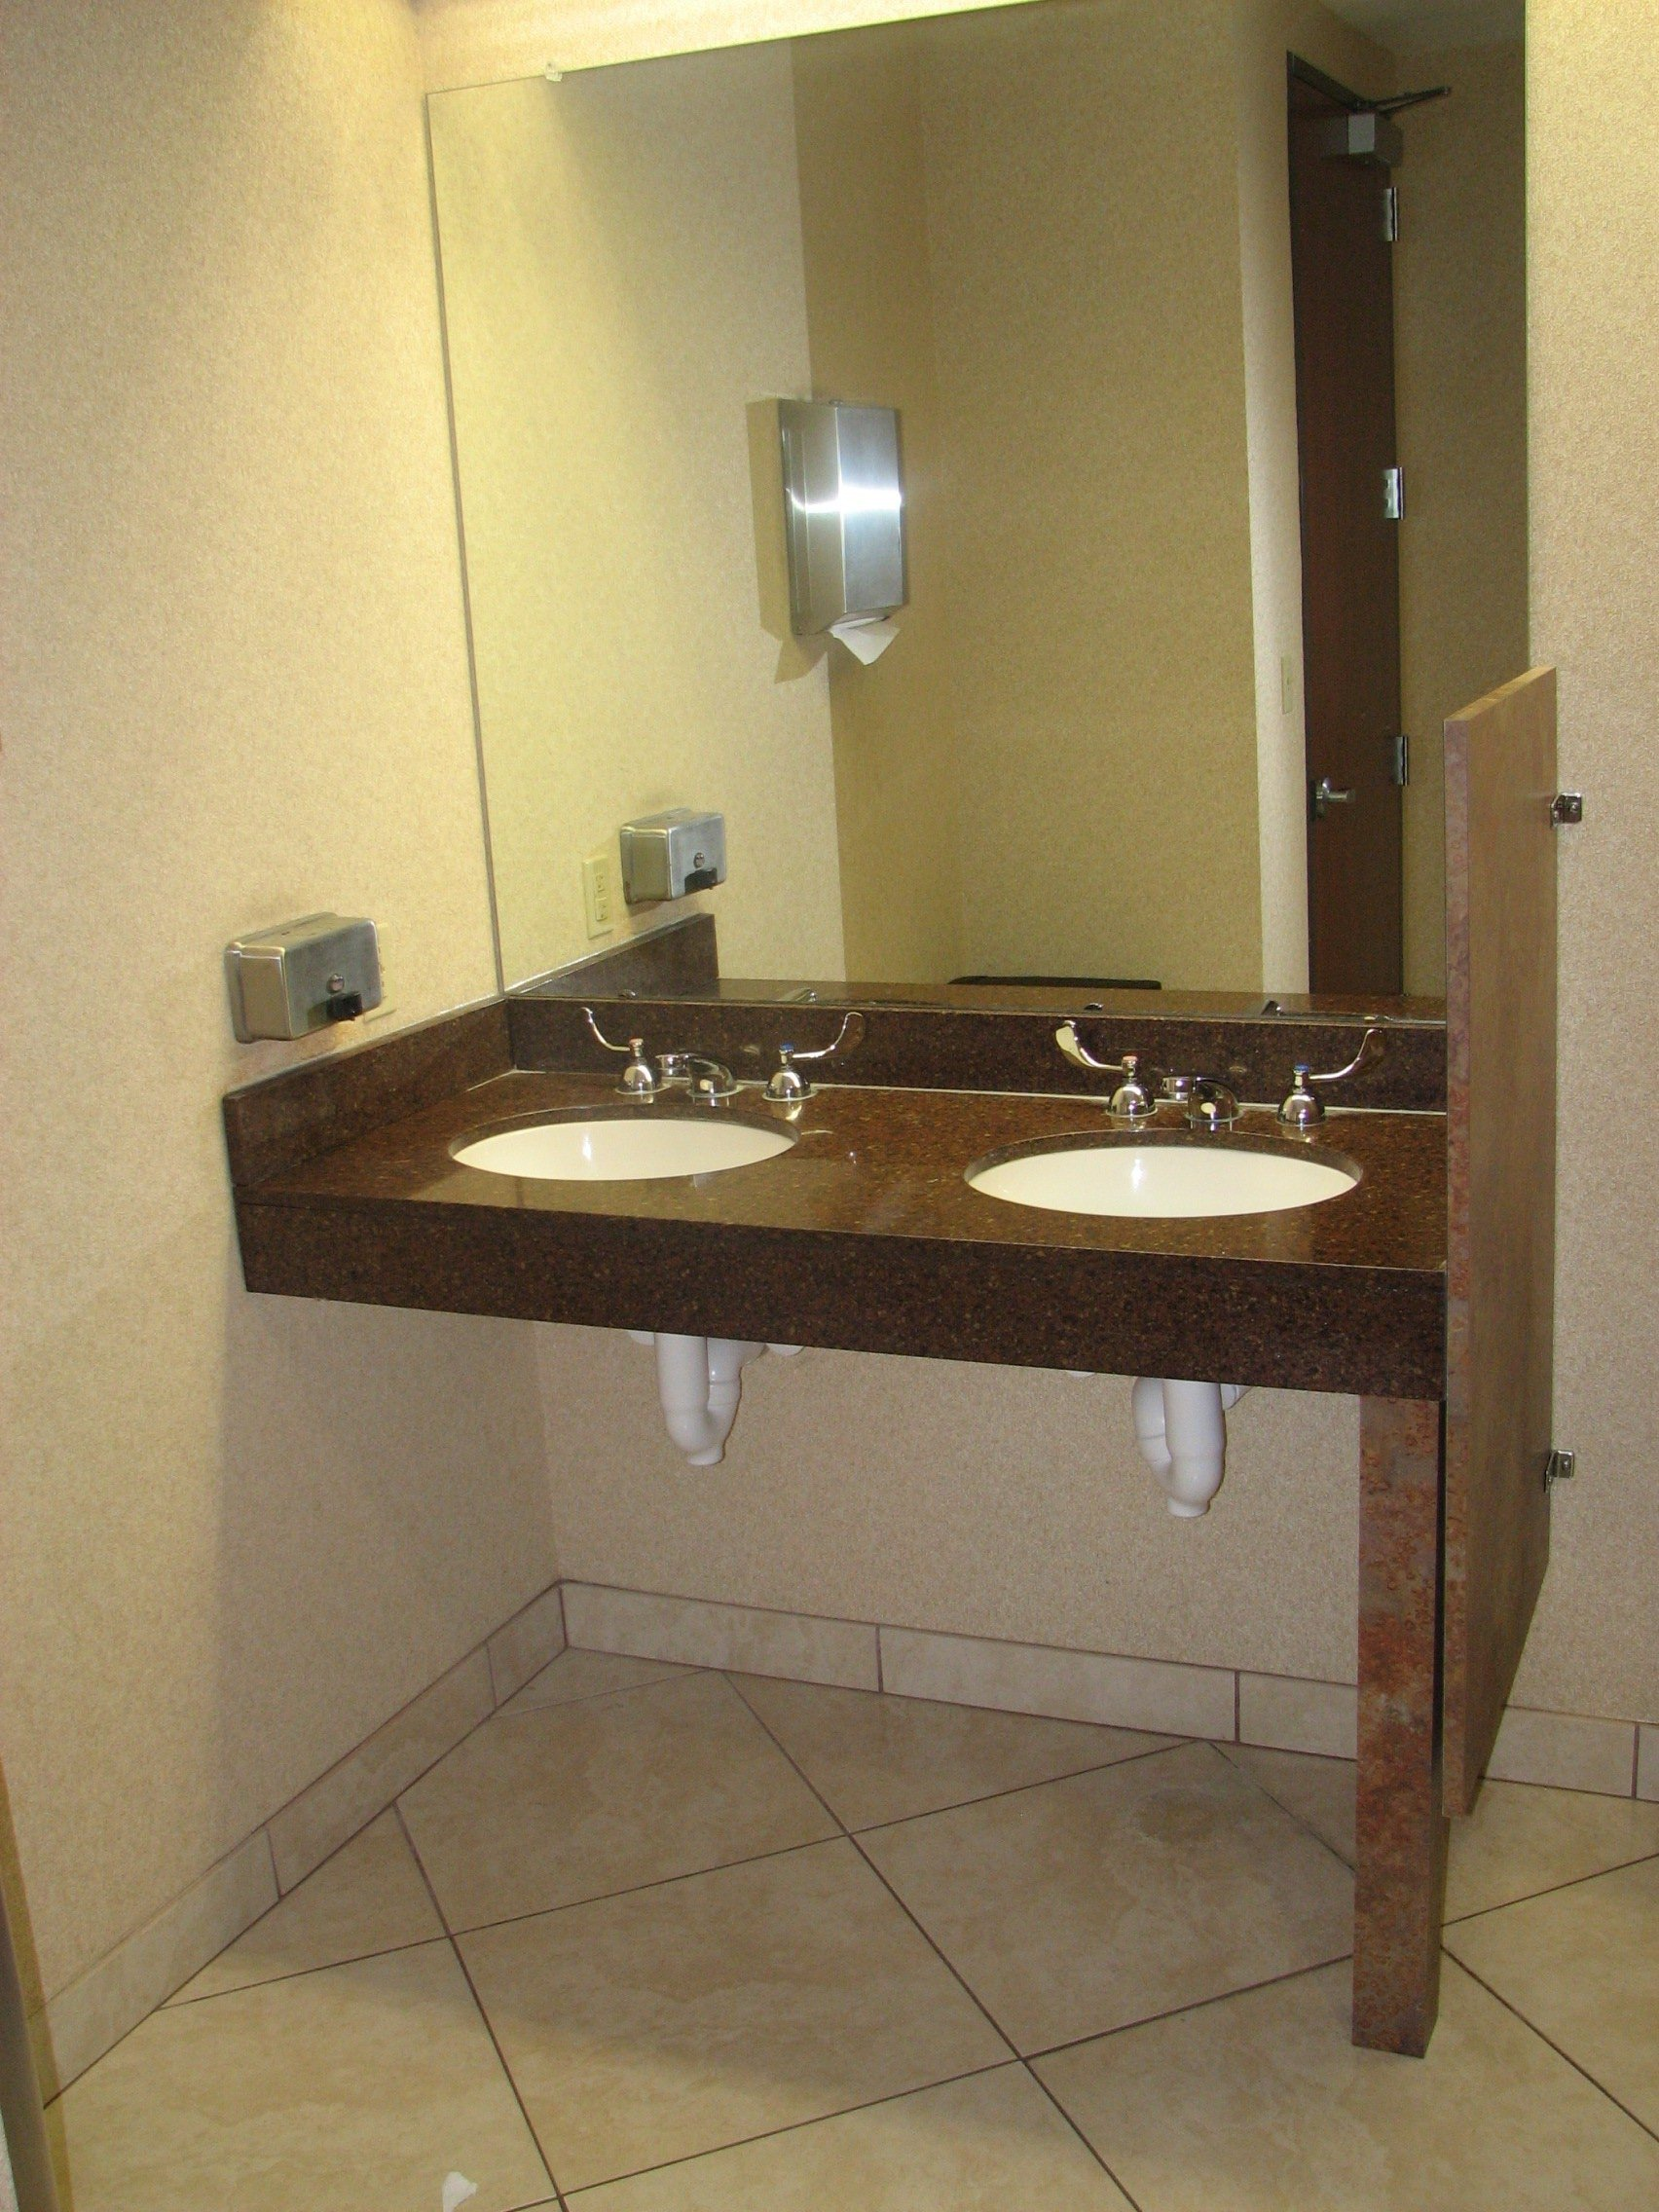 Wheelchair accessible bathrooms in austin texas for Ada compliant bathroom sink